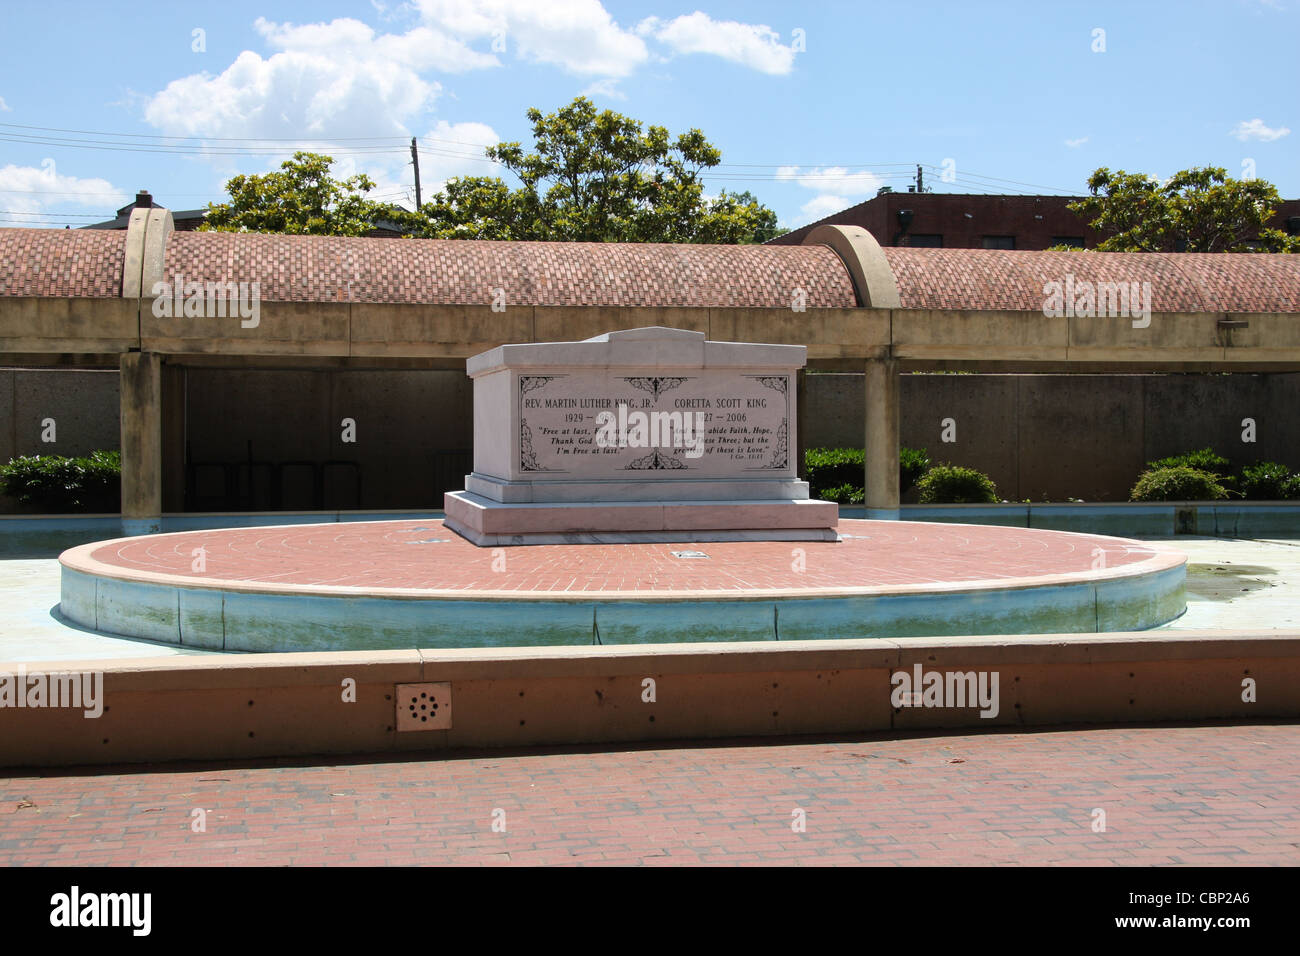 Tomb of Rev. Martin Luther King, Jr. and Coretta Scott King at the King Center, Atlanta, Georgia - Stock Image